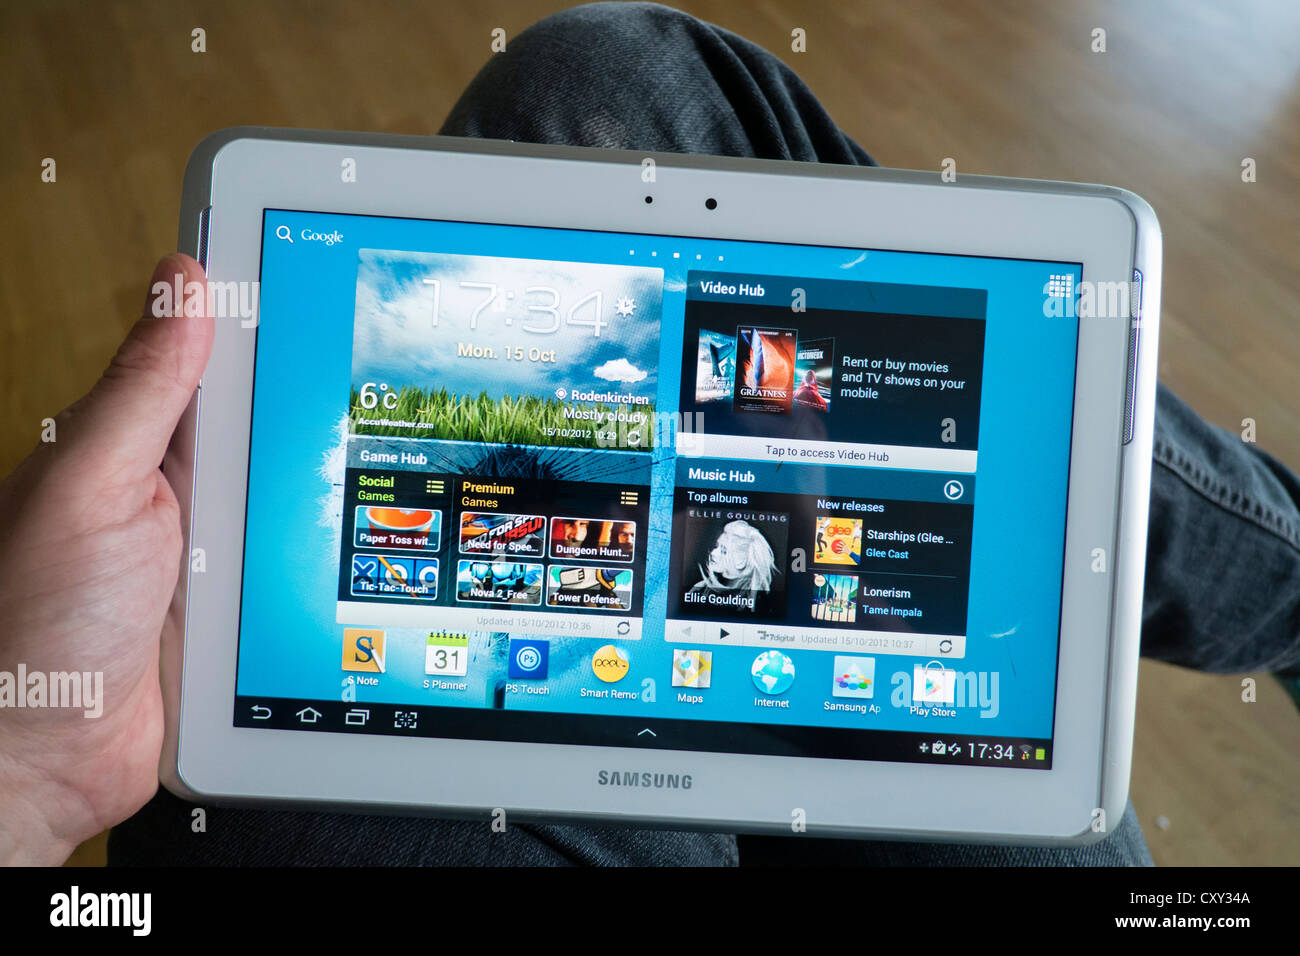 Man using Samsung Galaxy Note 10.1 tablet computer running Android operating system and showing large home screen - Stock Image